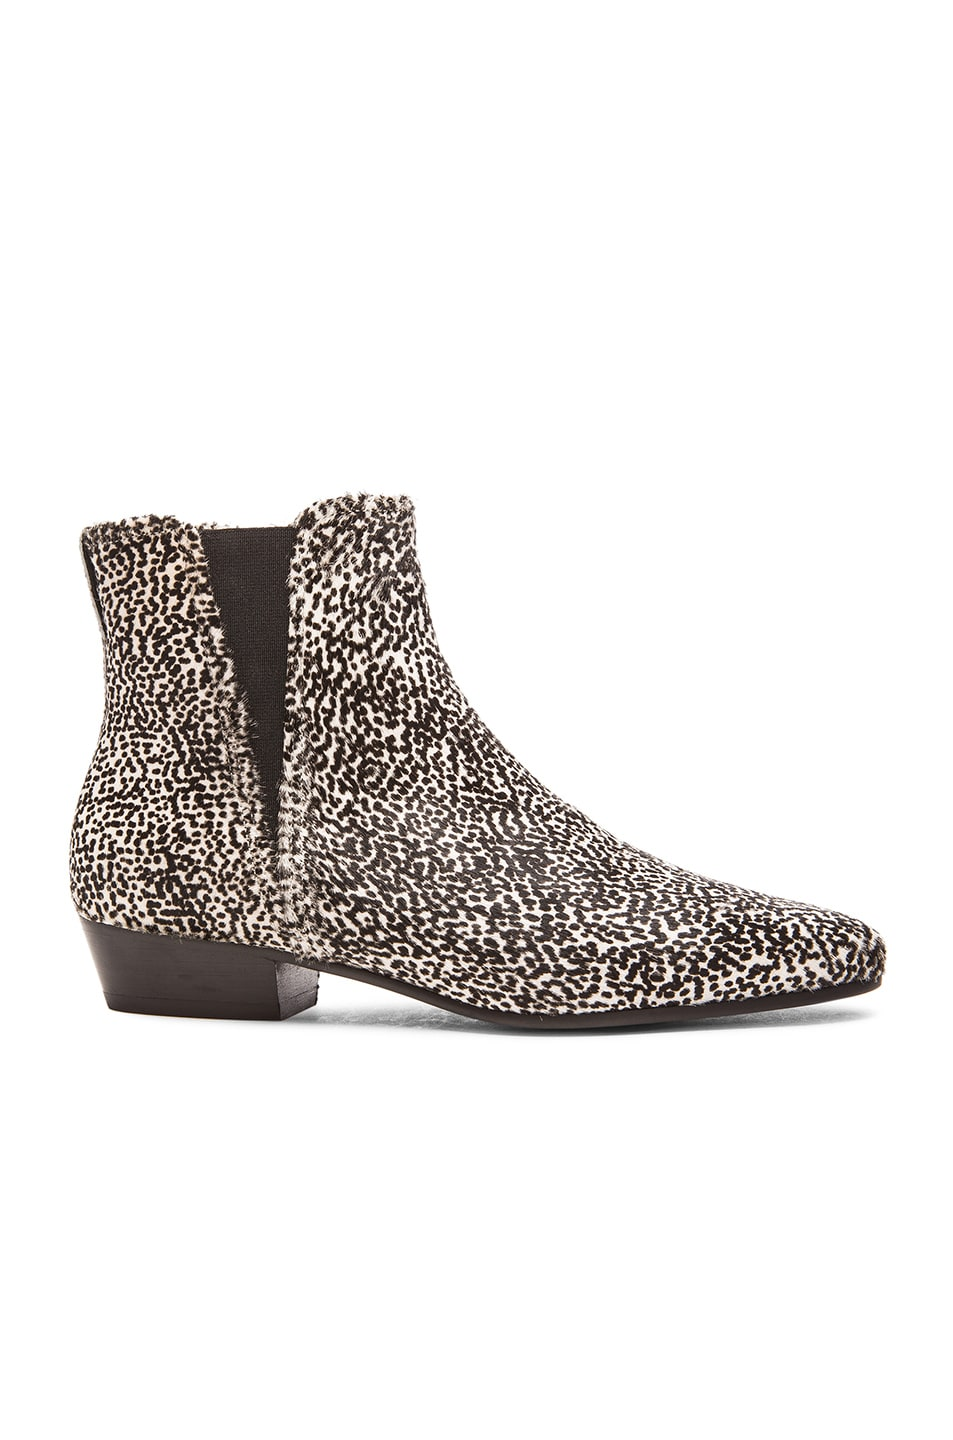 0a89fbe7e153 Image 1 of Isabel Marant Etoile Patsha Pony Hair Boots in Anthracite